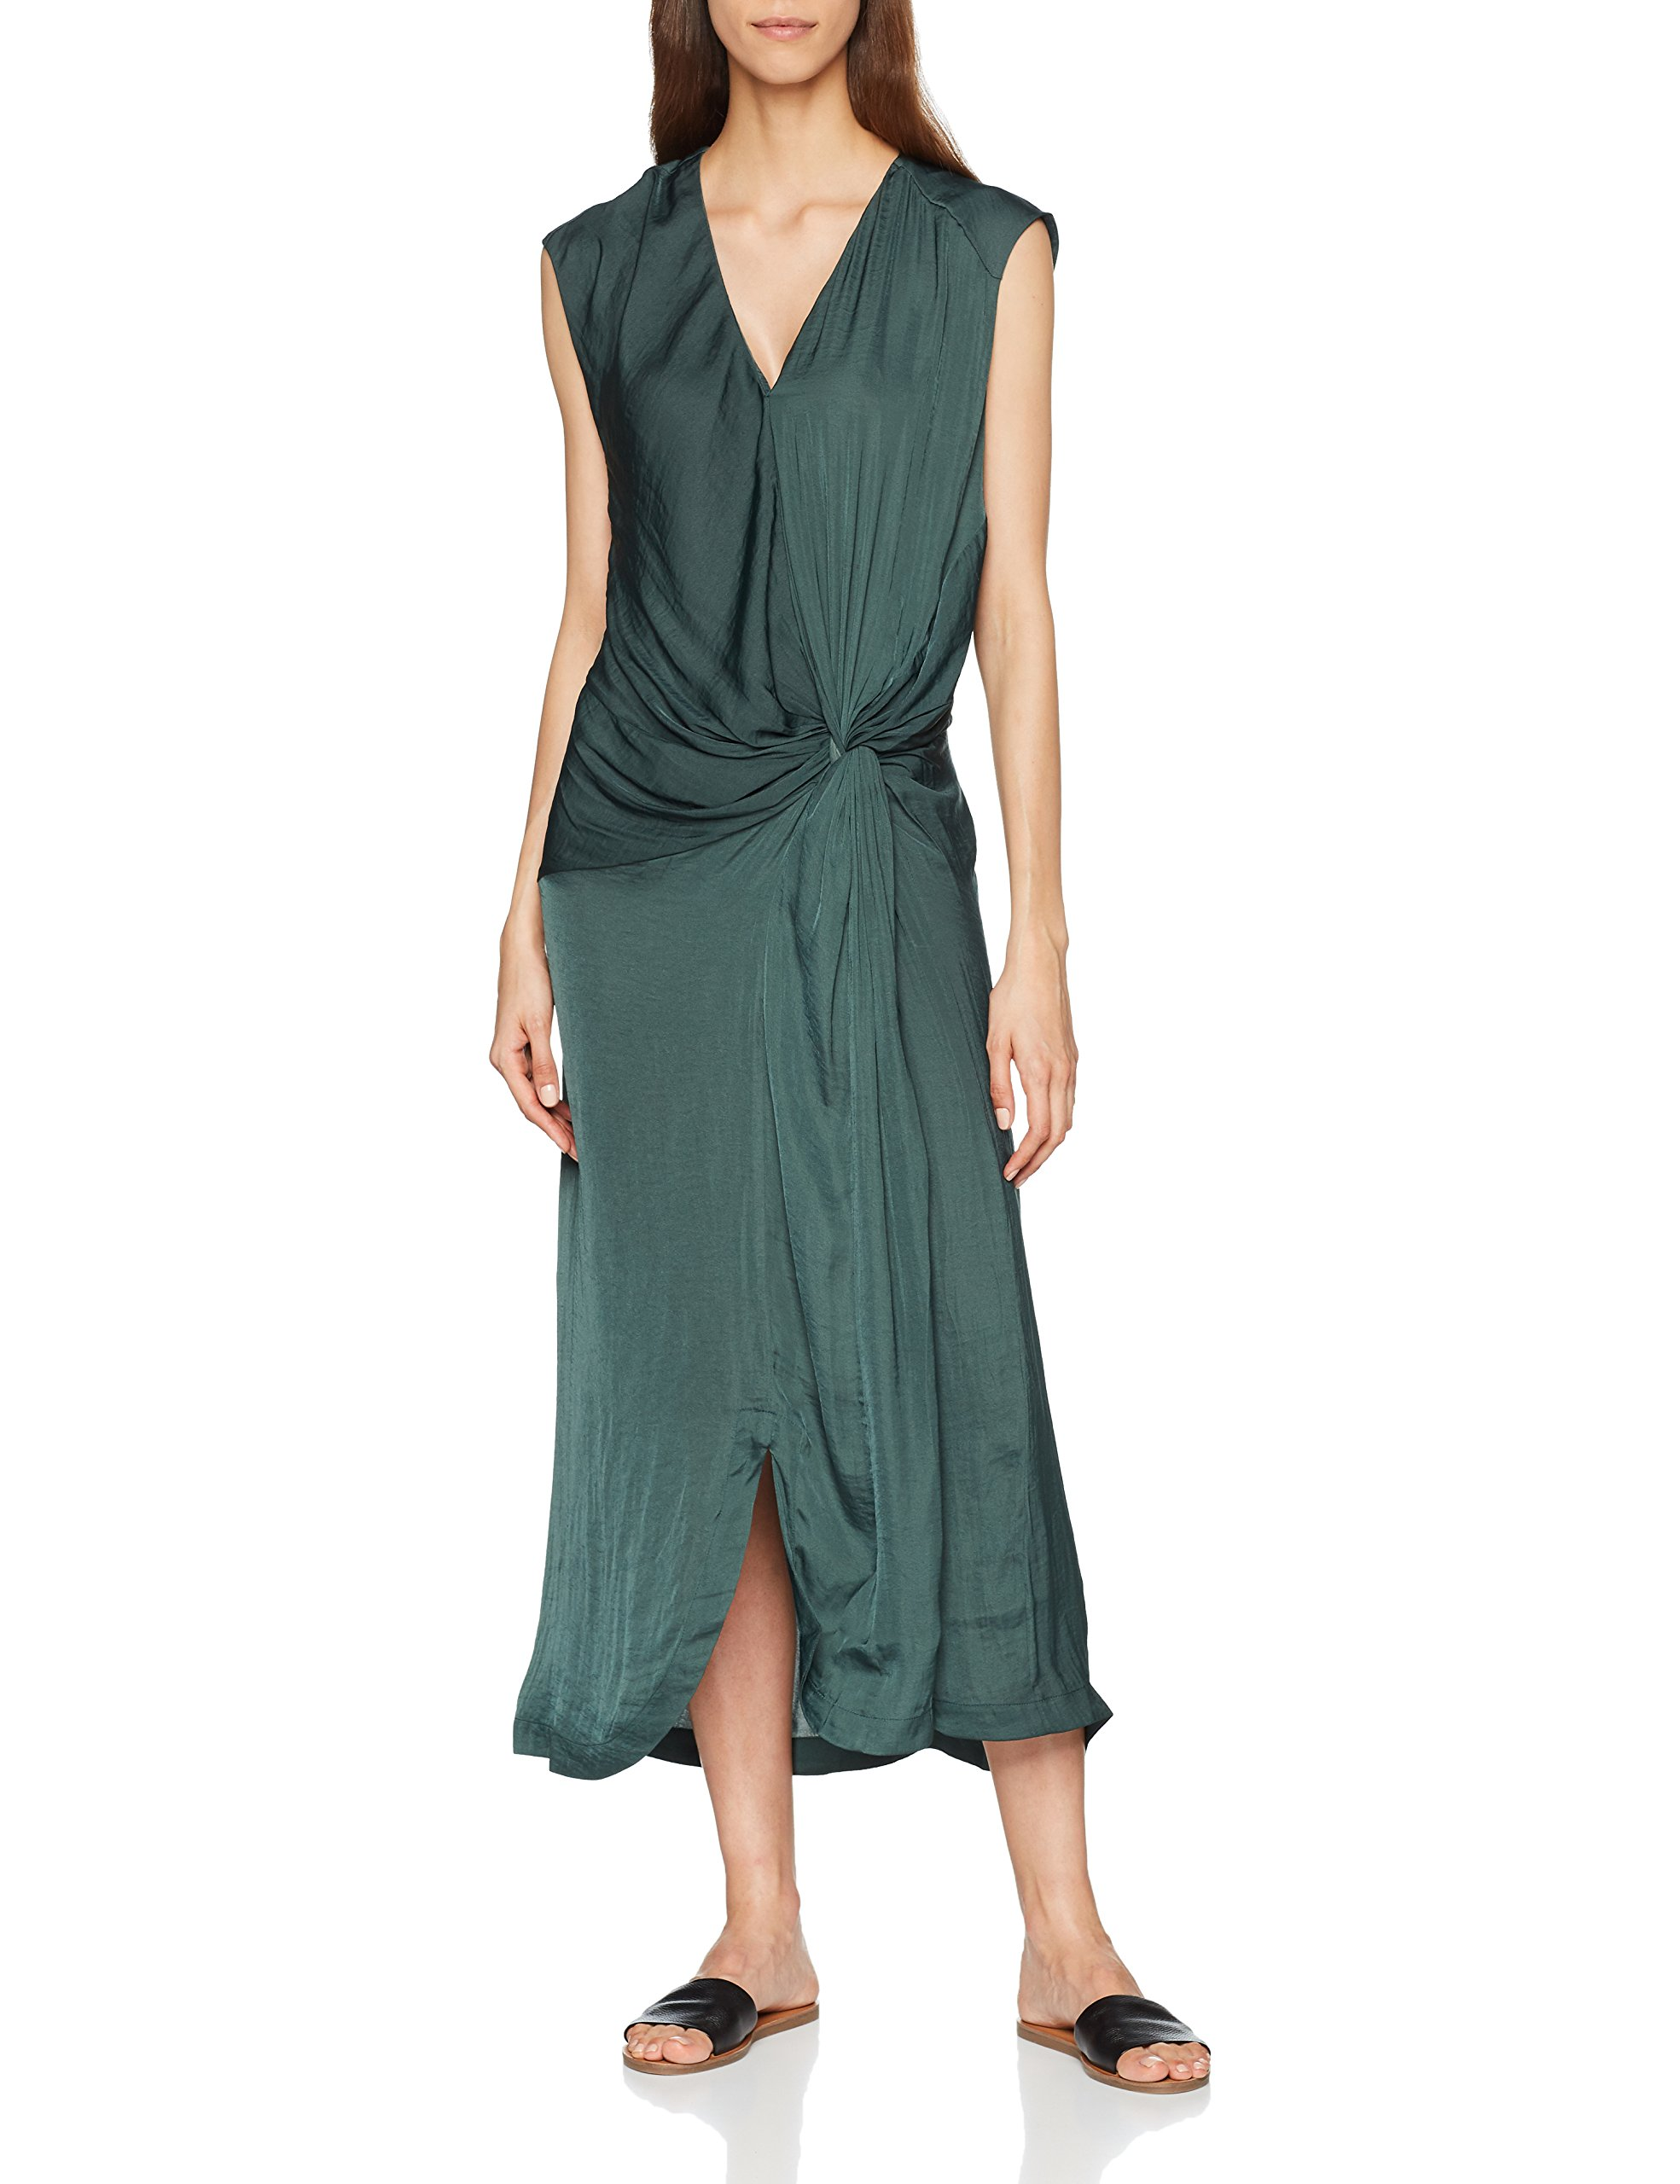 320Taille 36 RobeVertverde P652vem06353320 Intropia Femme Fabricant 6yYbf7g